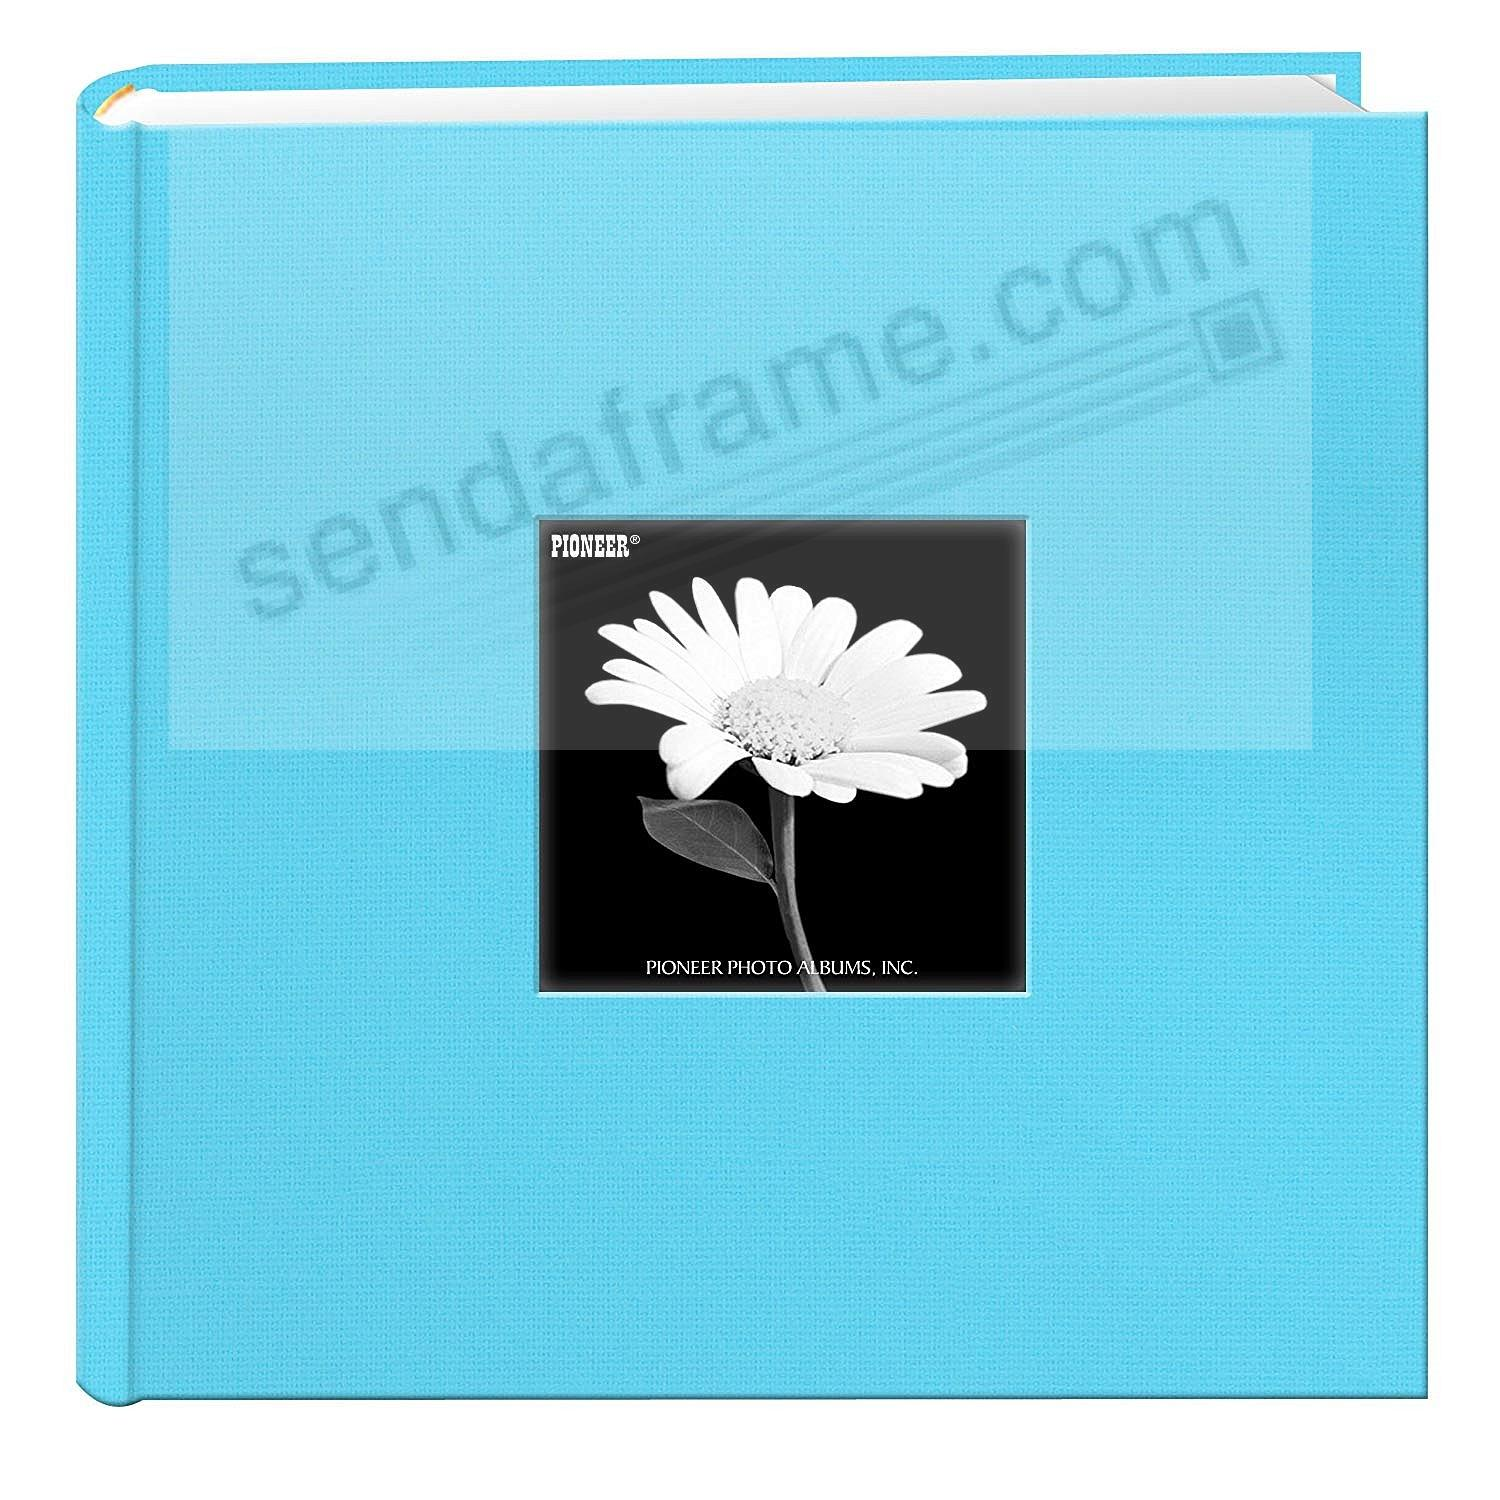 TURQUOISE BLUE Cloth 2-up frame cover photo album by Pioneer®